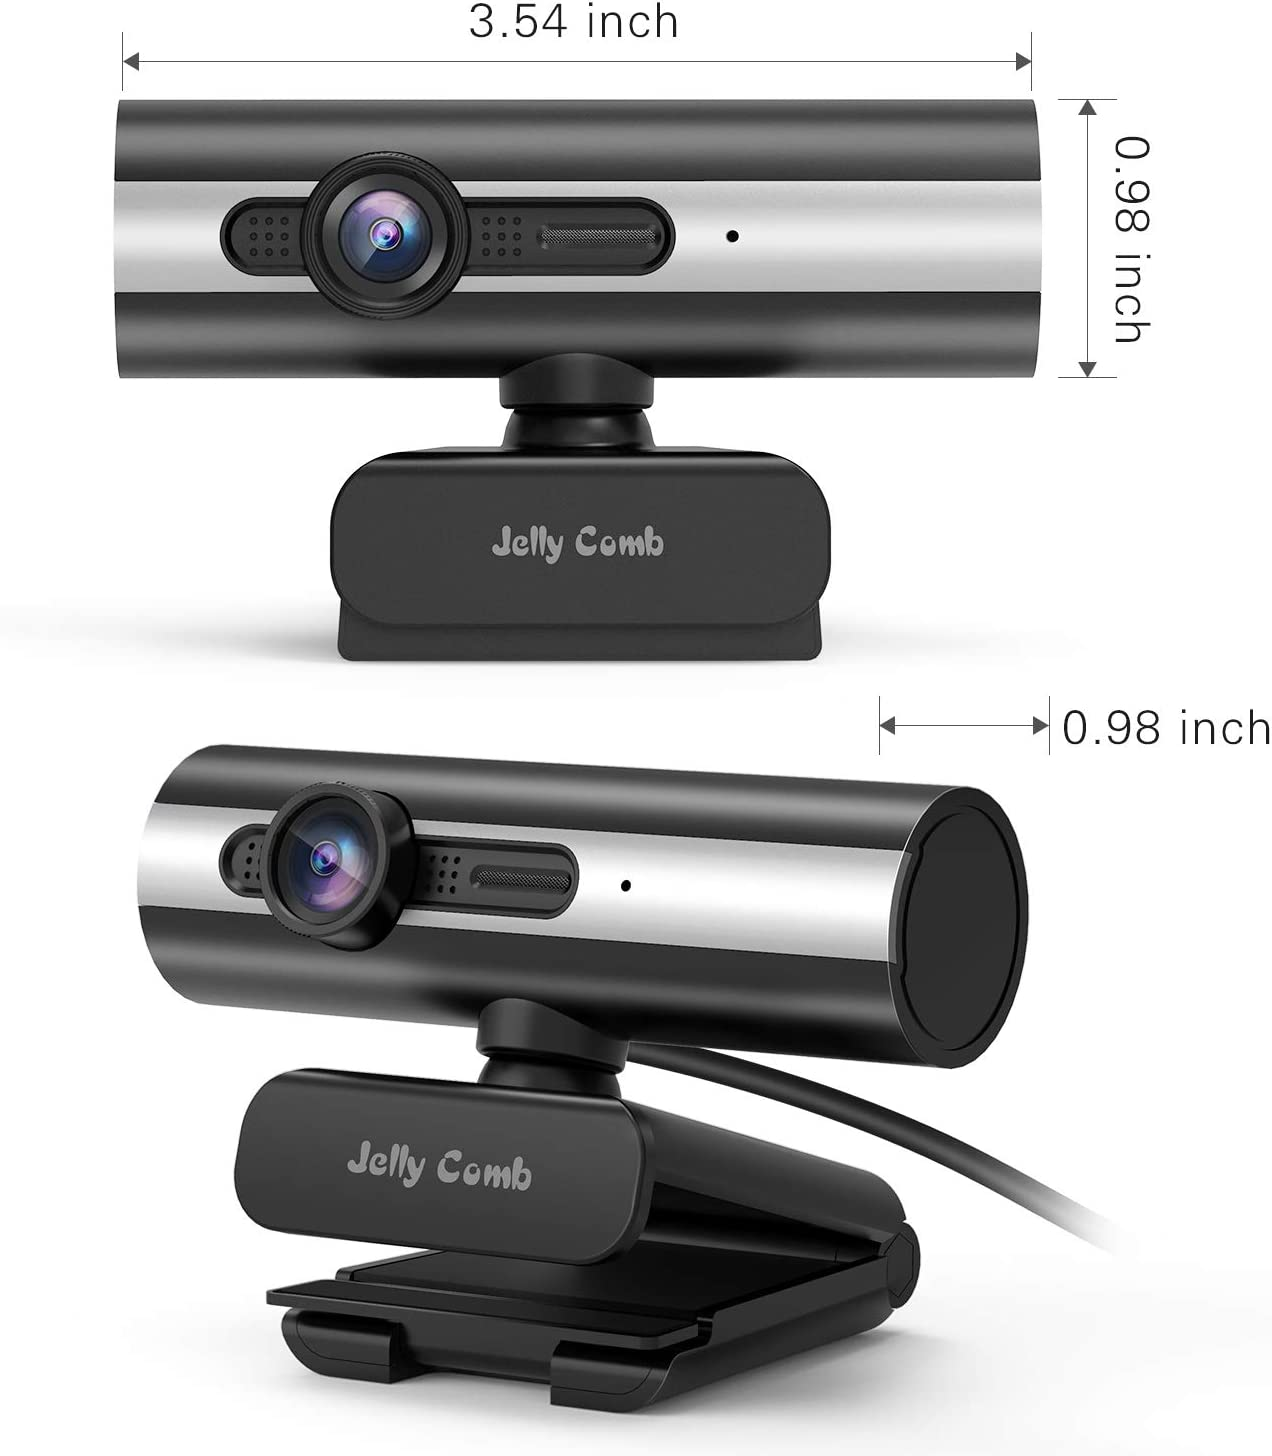 Webcam 1080P Full HD Recording Jelly Comb Computer Camera USB Web Camera with Built-in Microphone for Skype Video Calling,Conferencing Streaming